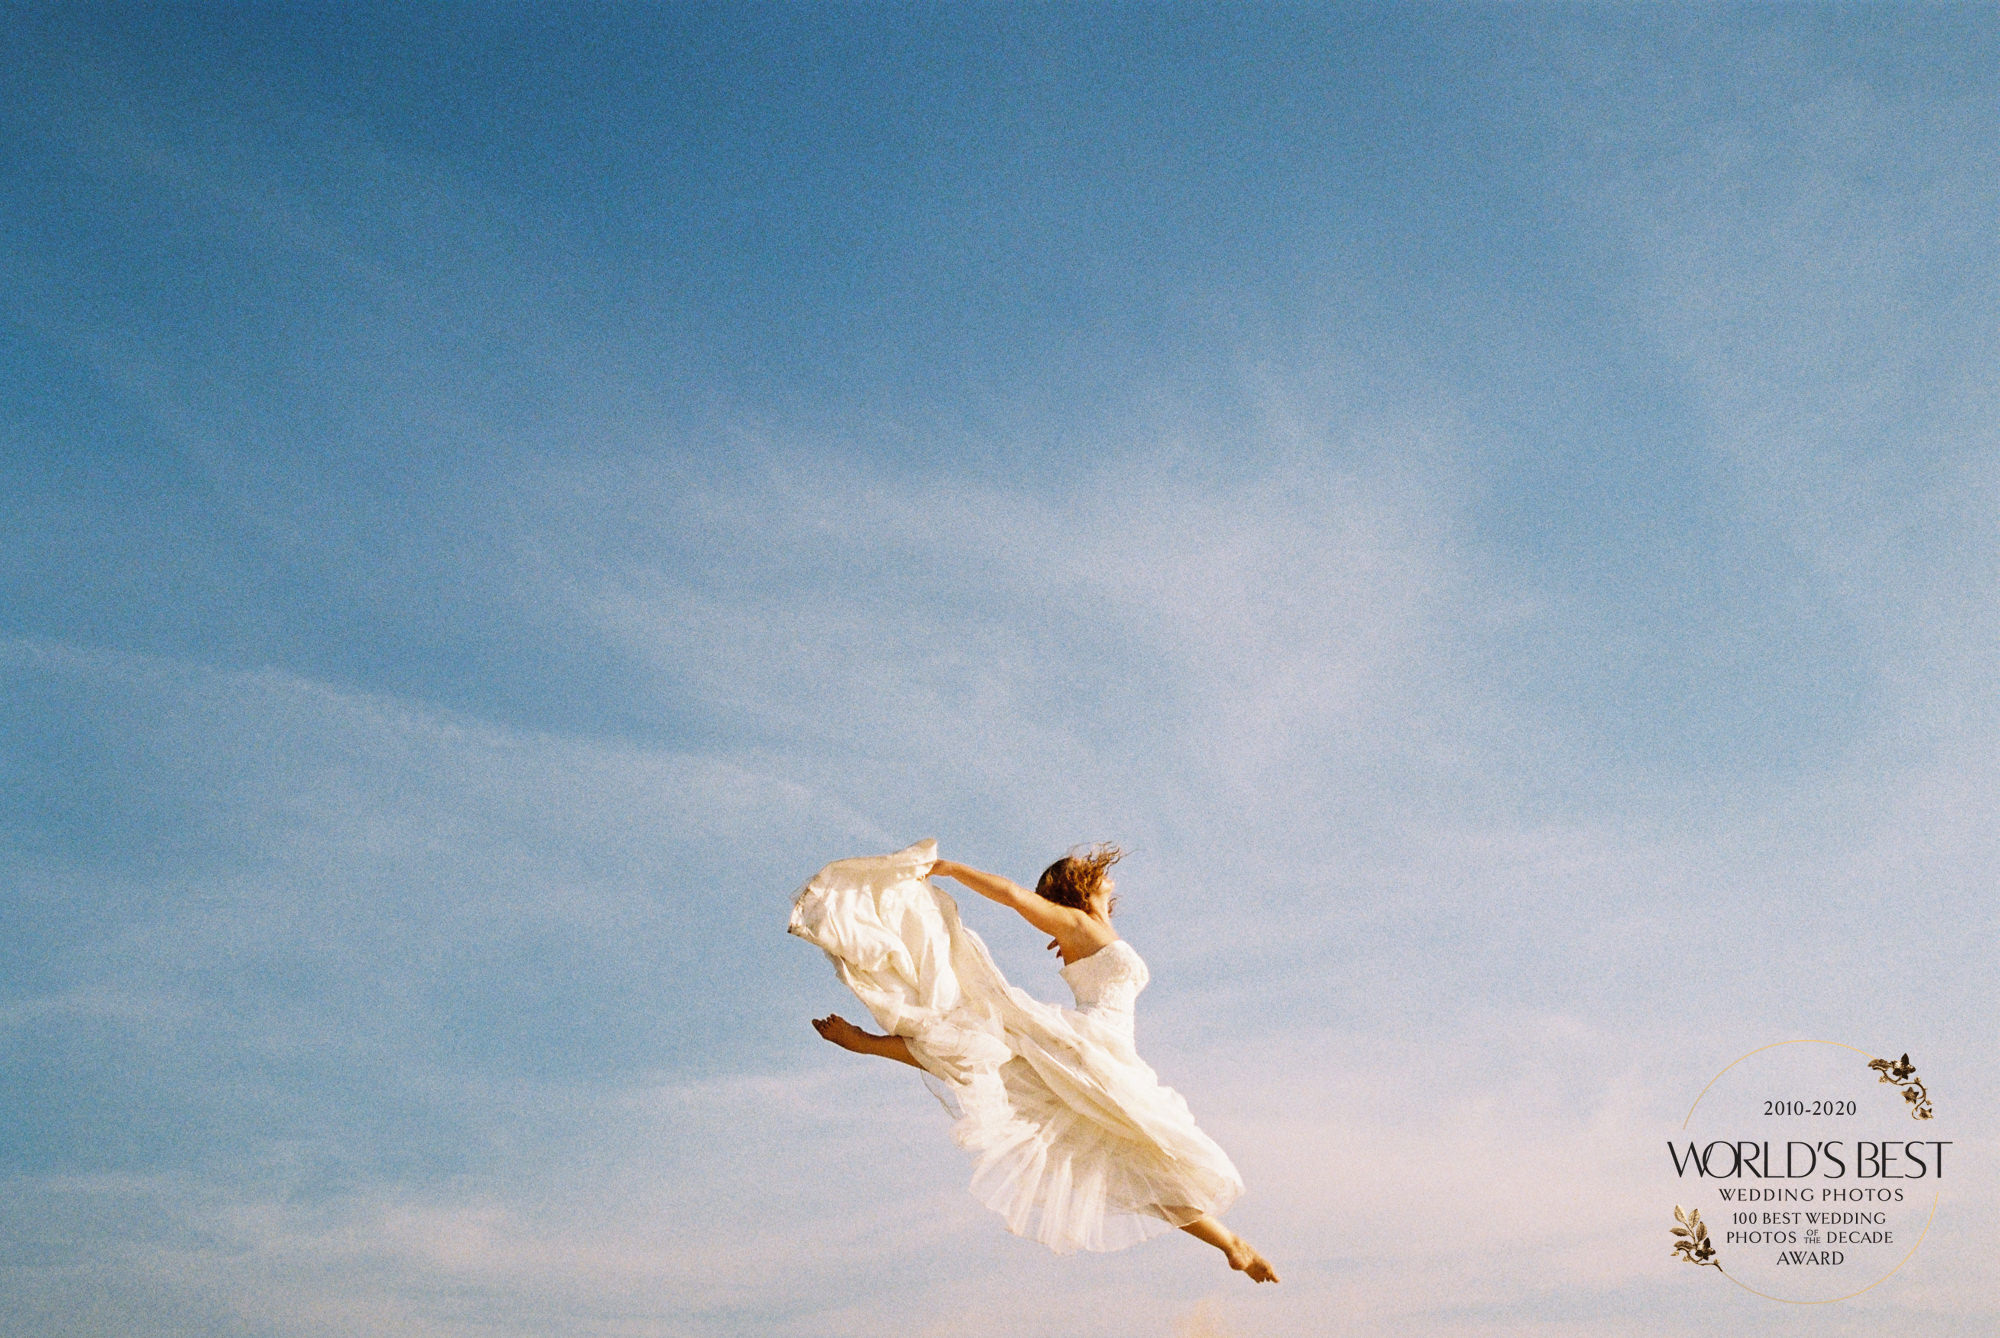 Award-winning, uplifting photo of bride in the air by Fer Juaristi - Mexico